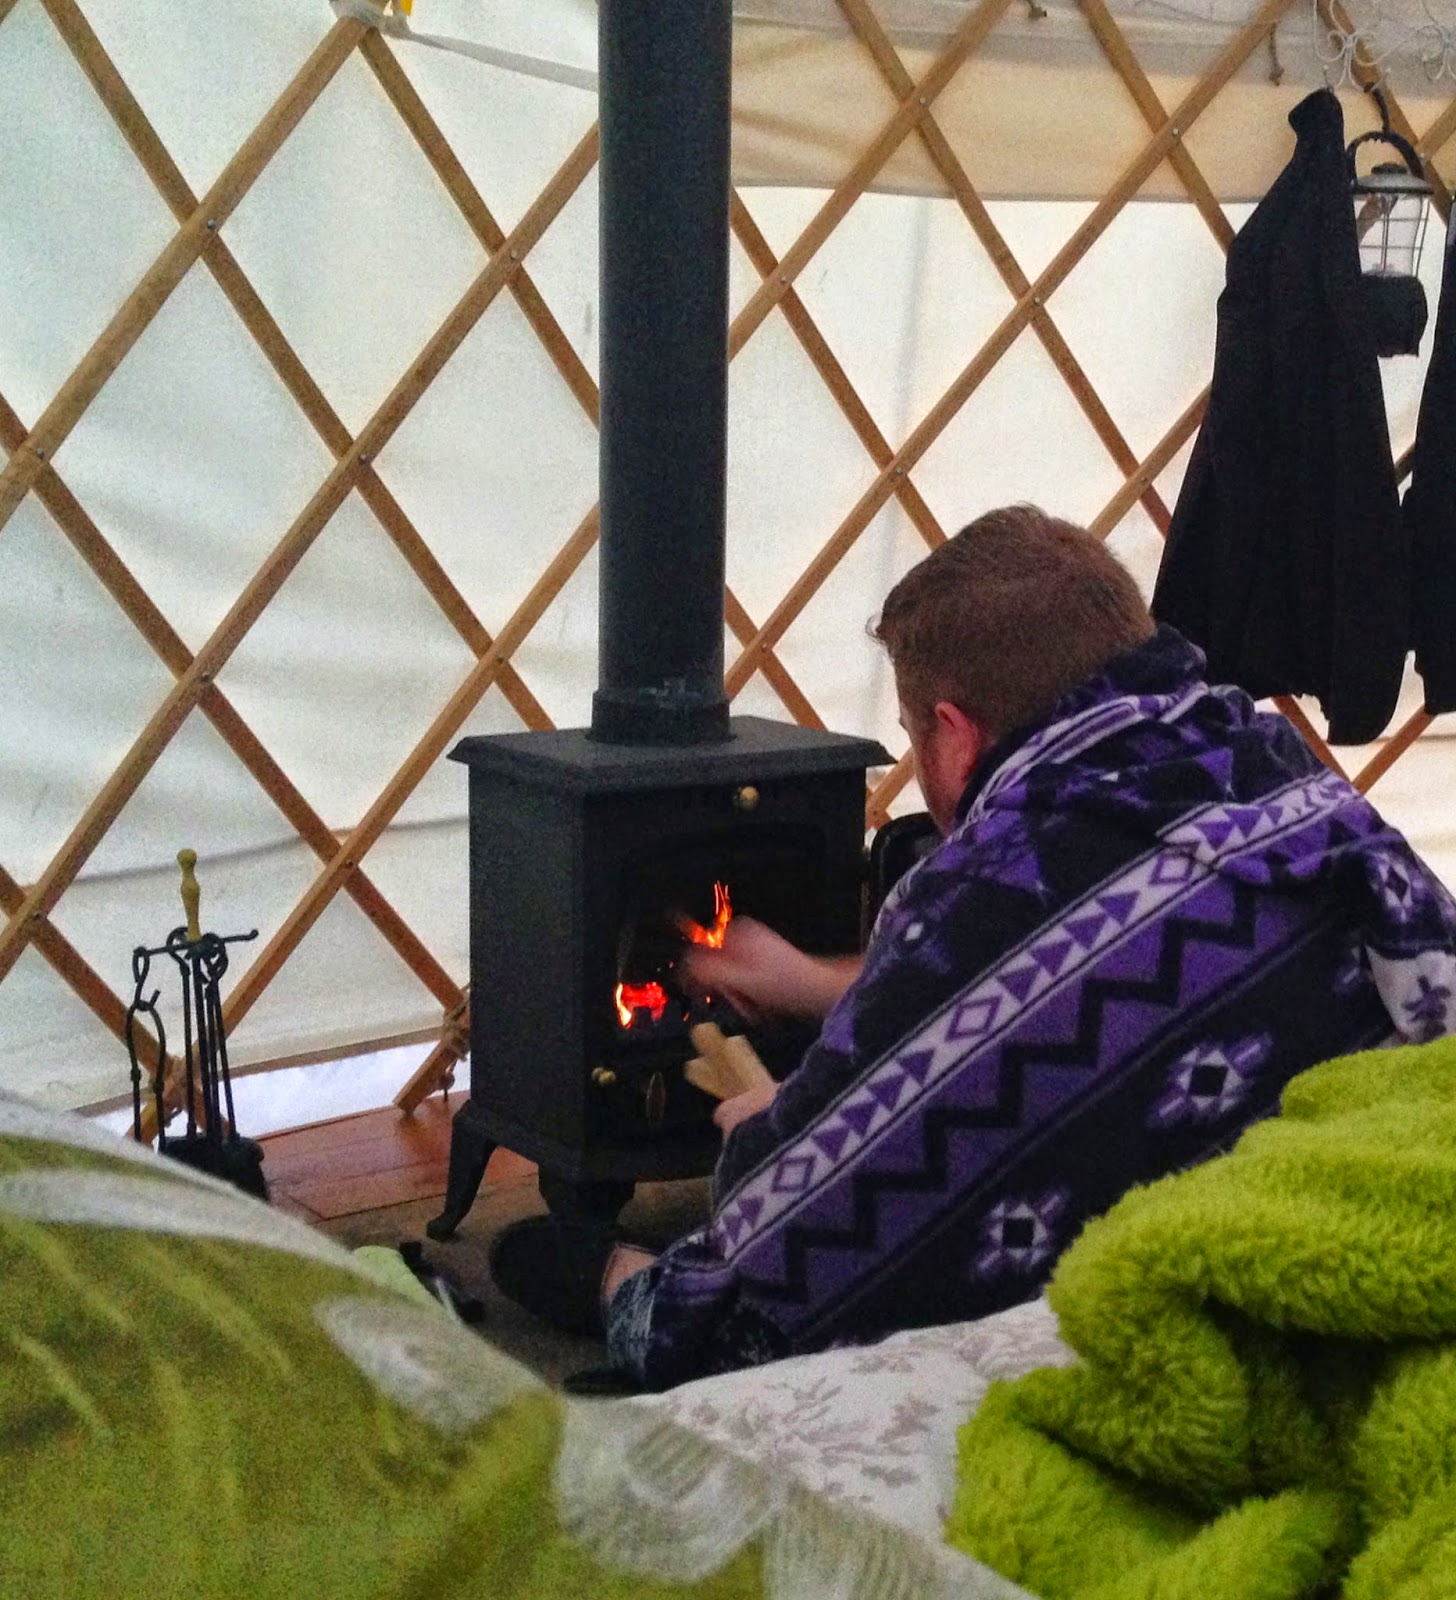 Acorn Glade - lighting the wood burning stove in yurt